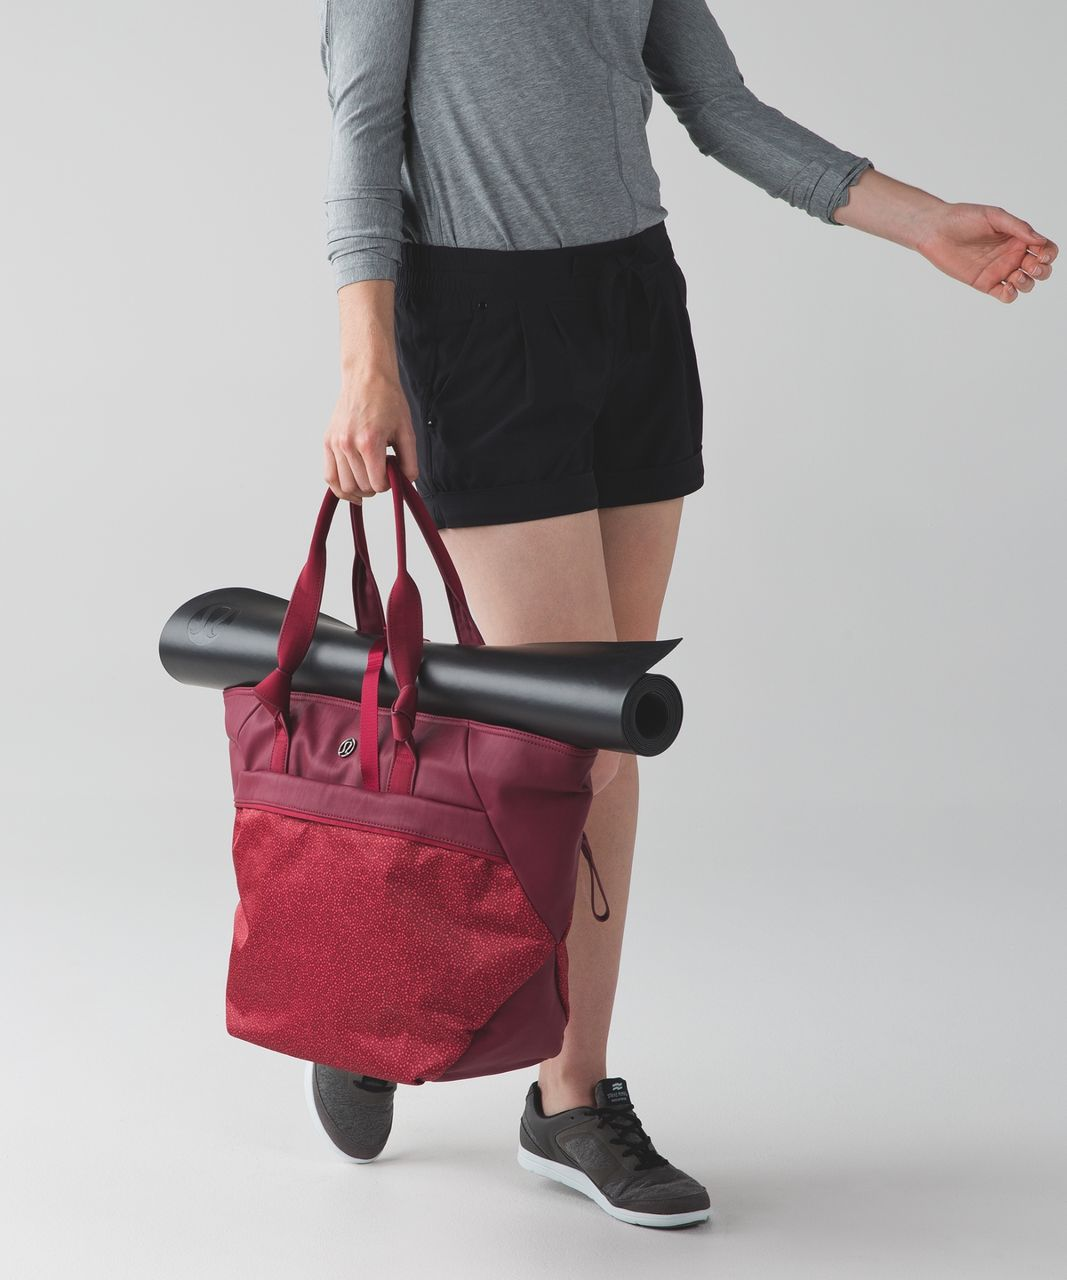 46d8a2ddaf Lululemon Everything Bag - Rosewood / Freckle Flower Fireside Red Rosewood